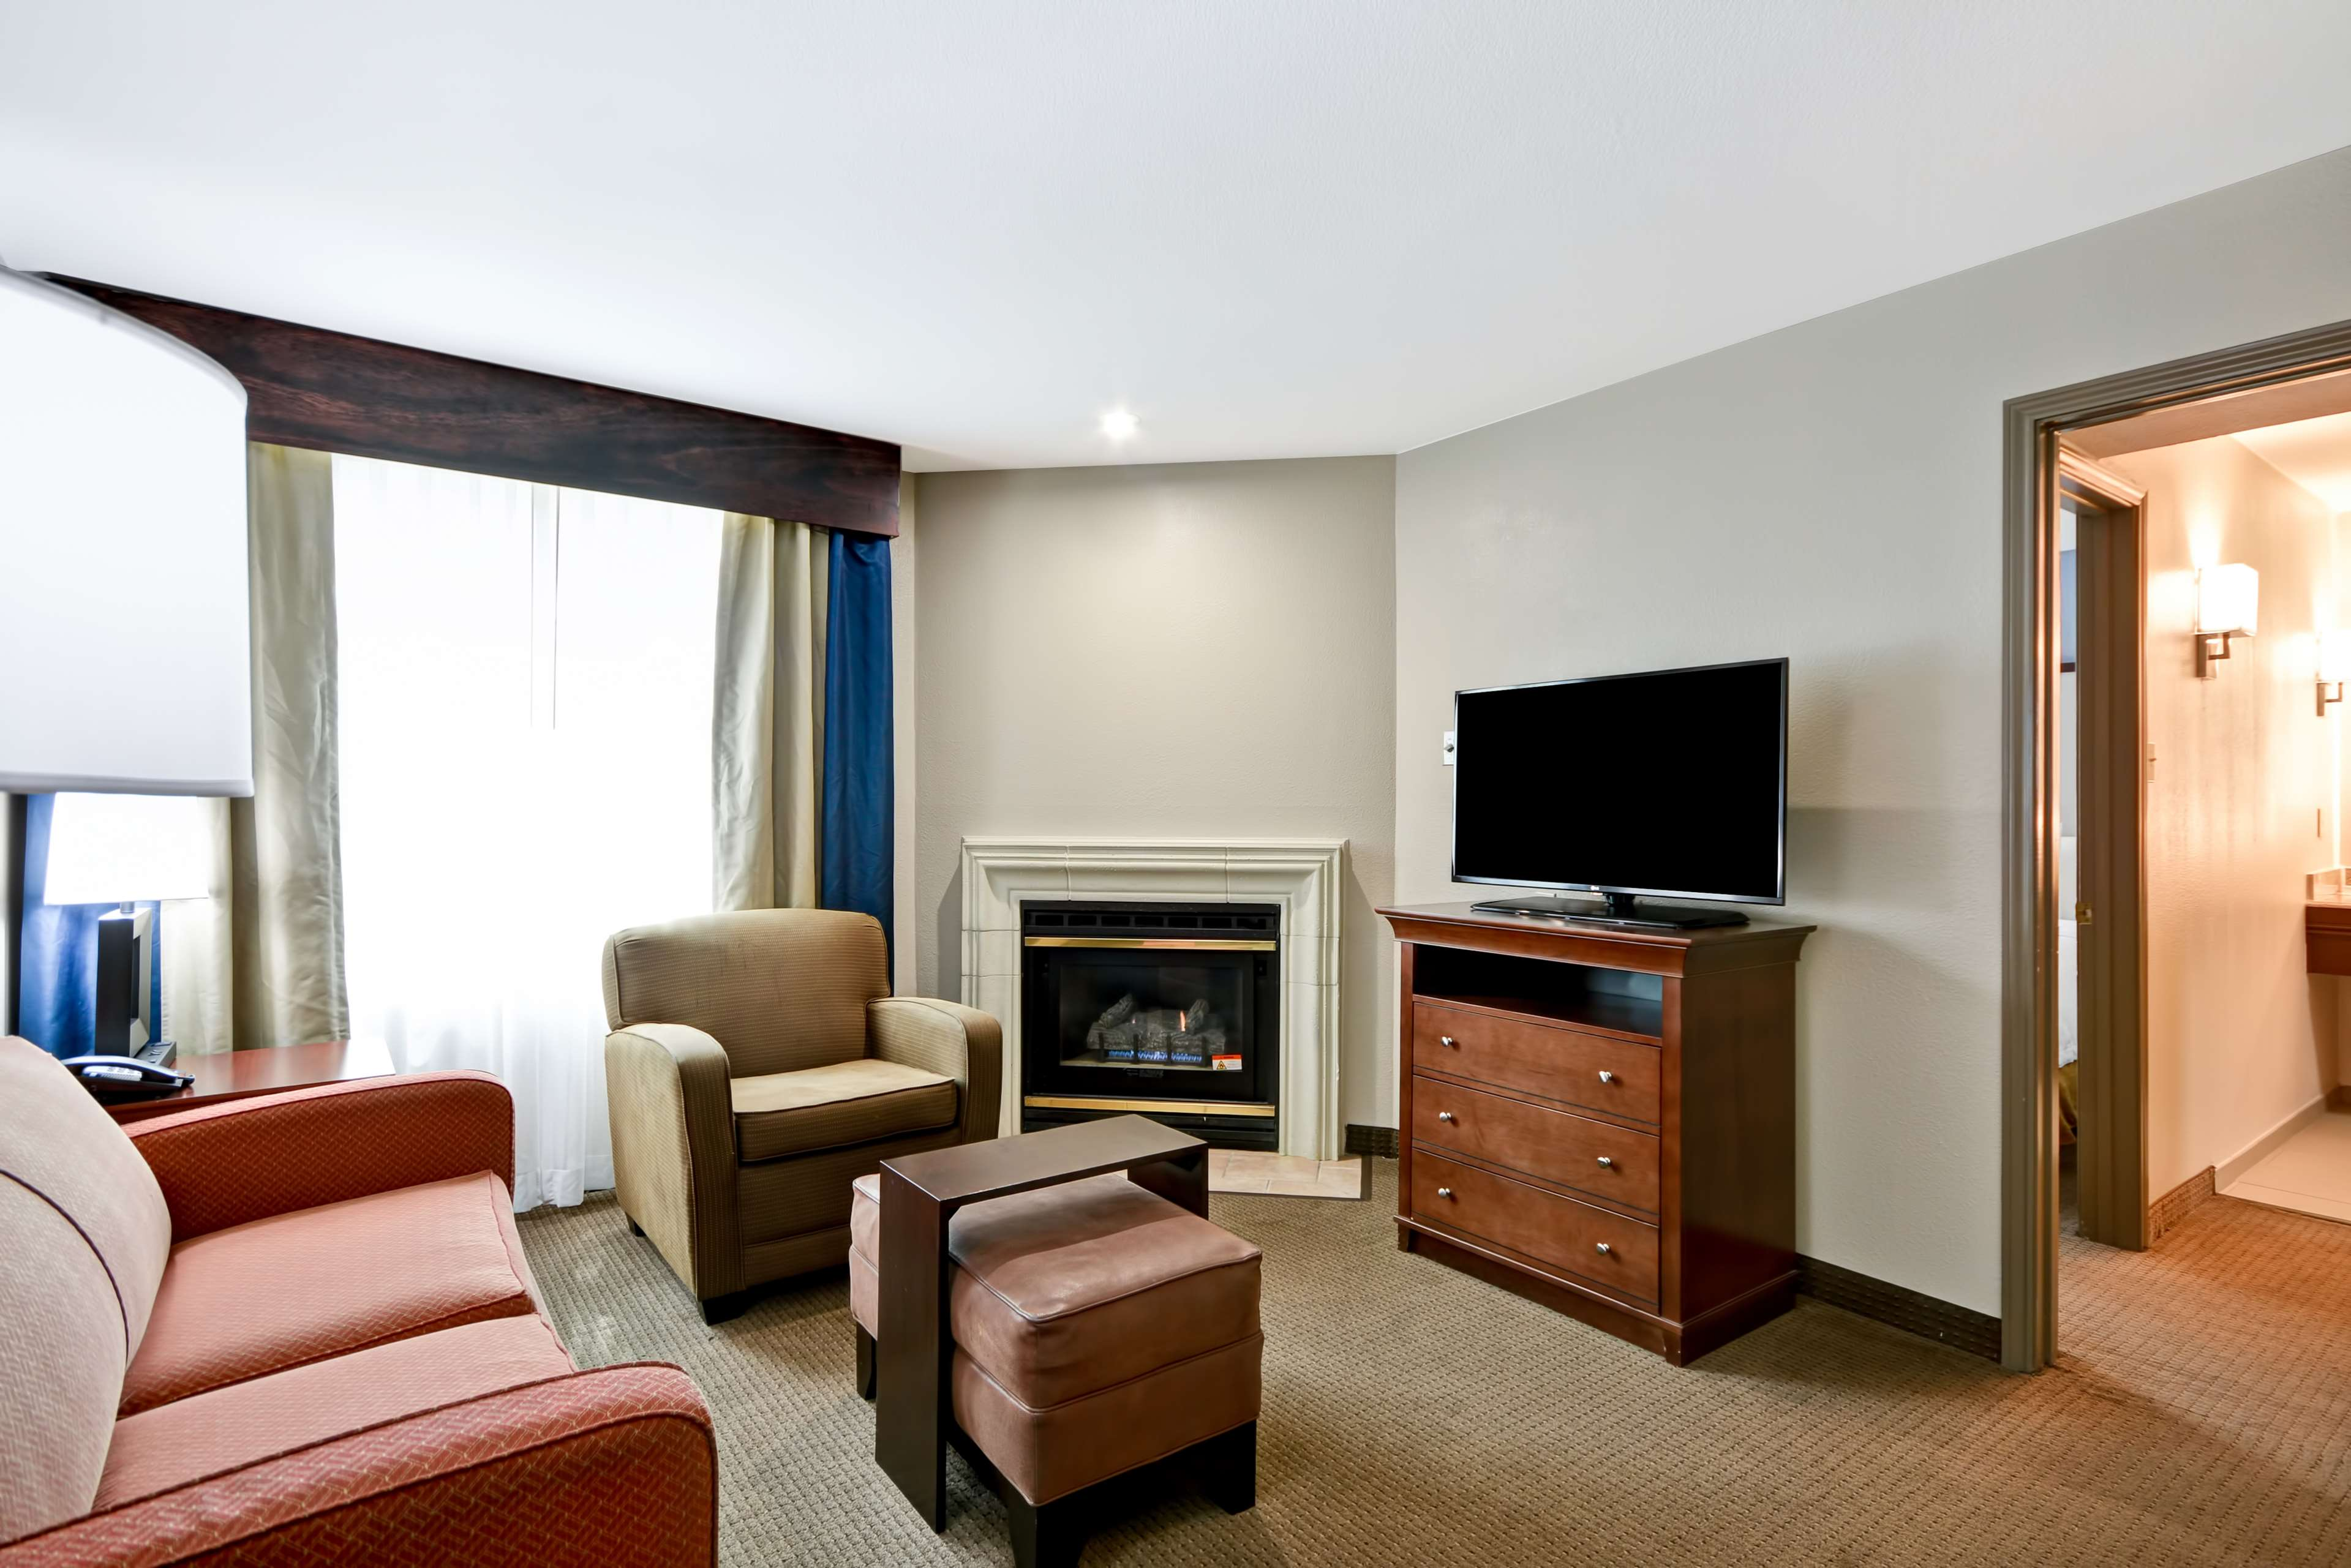 Homewood Suites by Hilton Dallas-Lewisville image 27